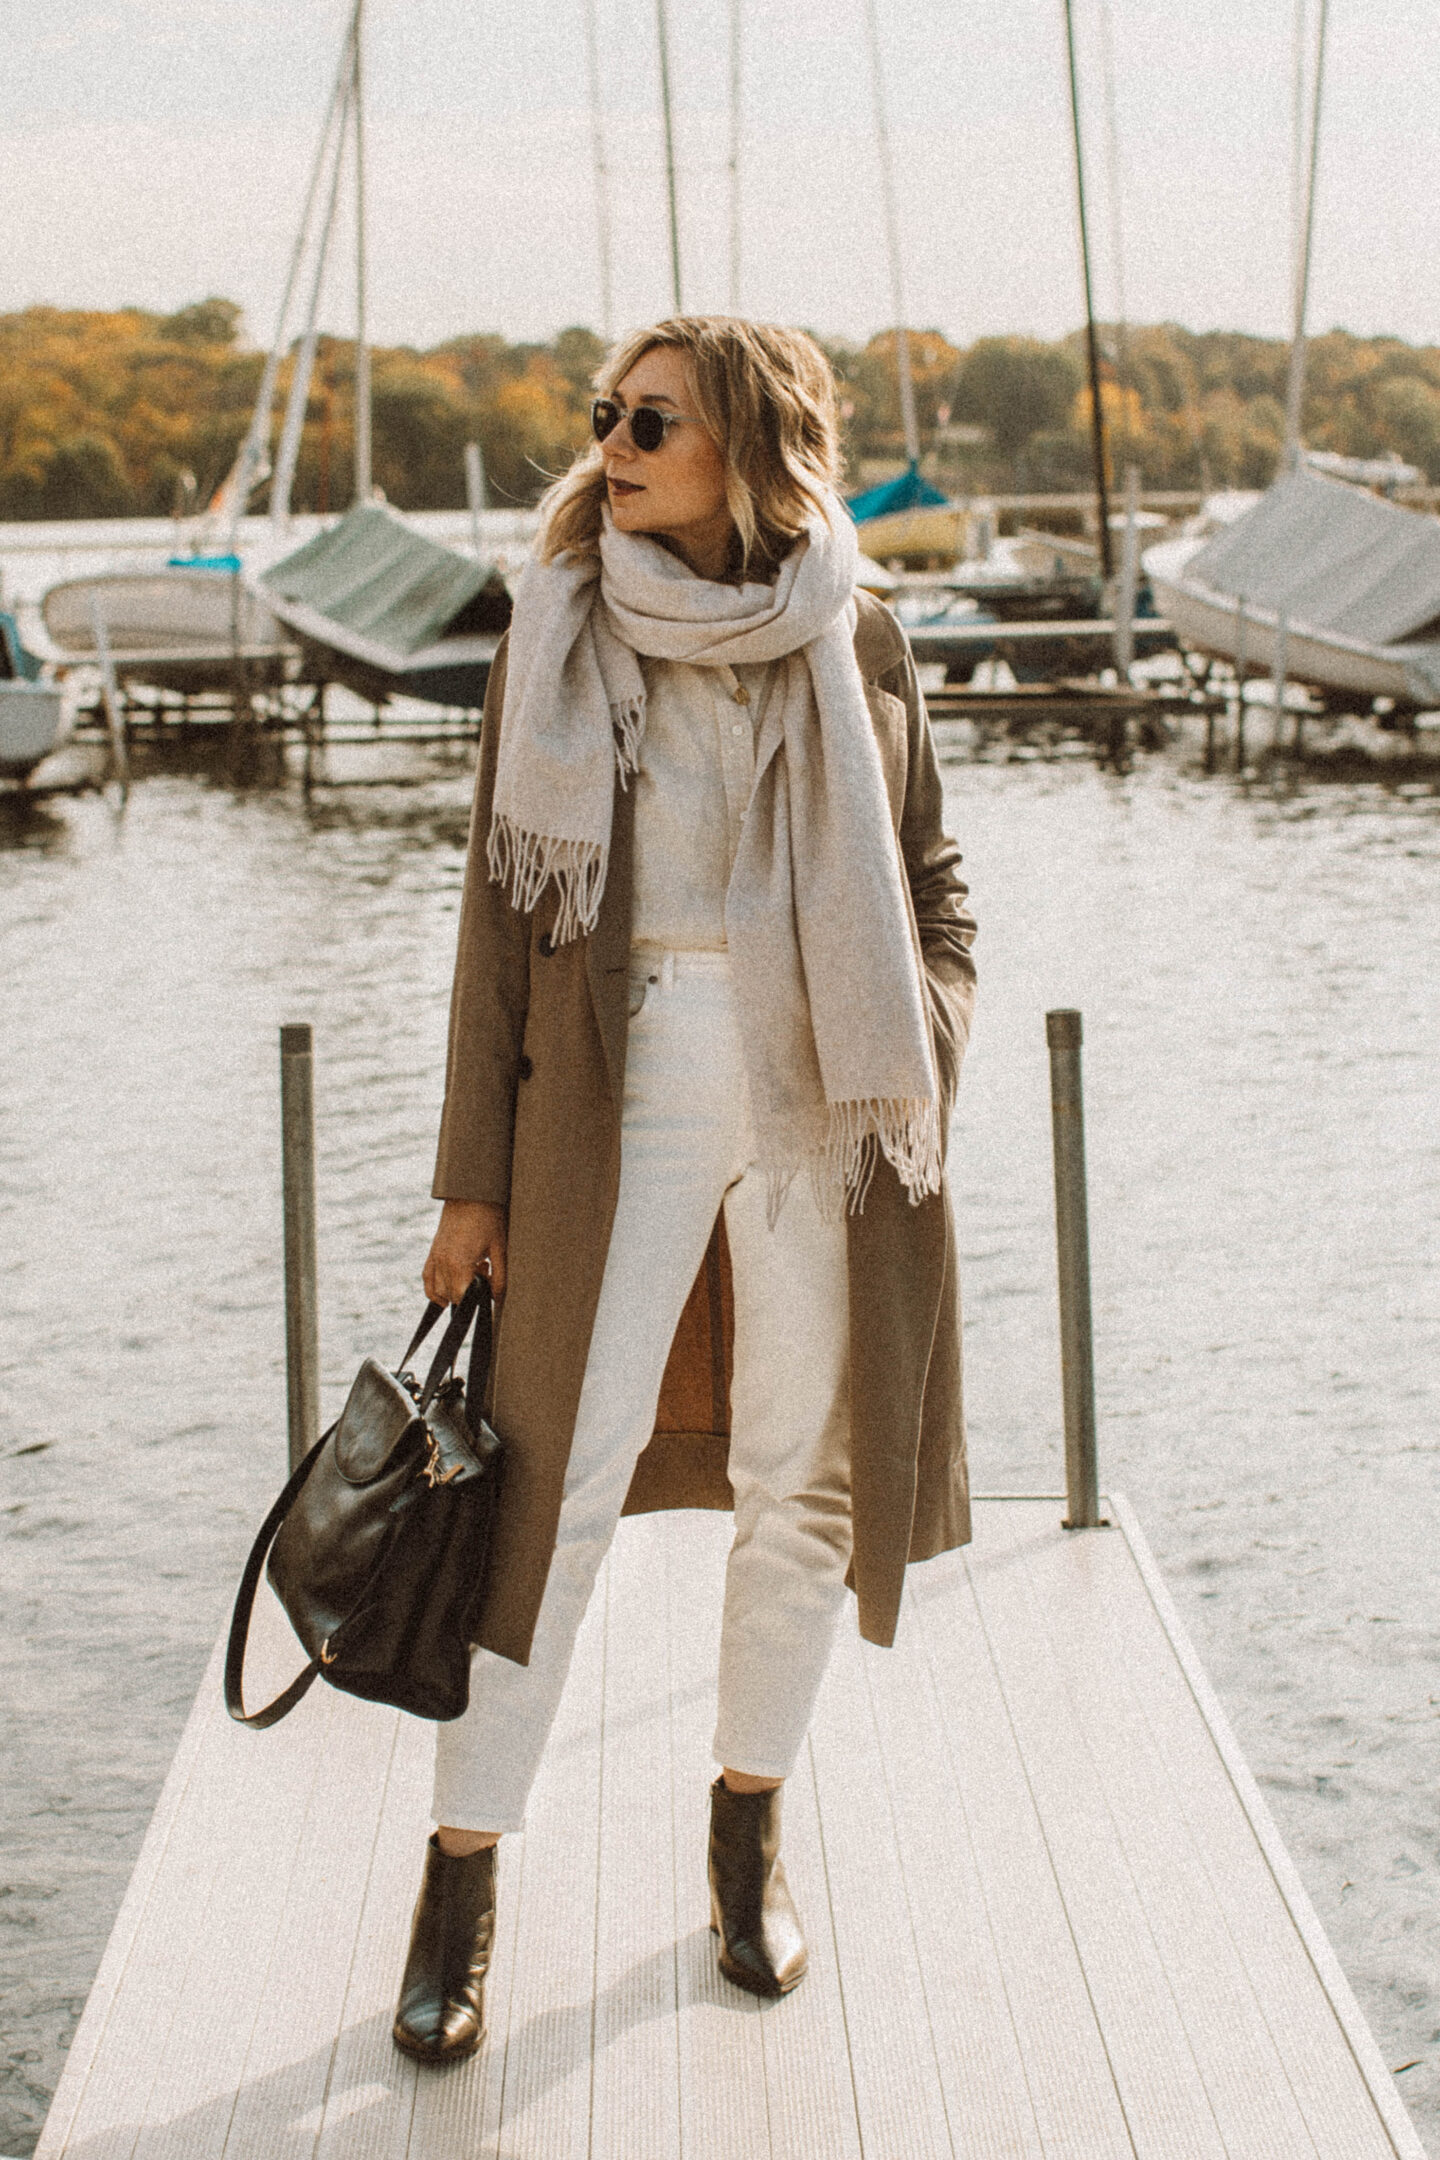 How to Style White Jeans for Fall, everlane boss boot, everlane trench coat, oversized wool scarf